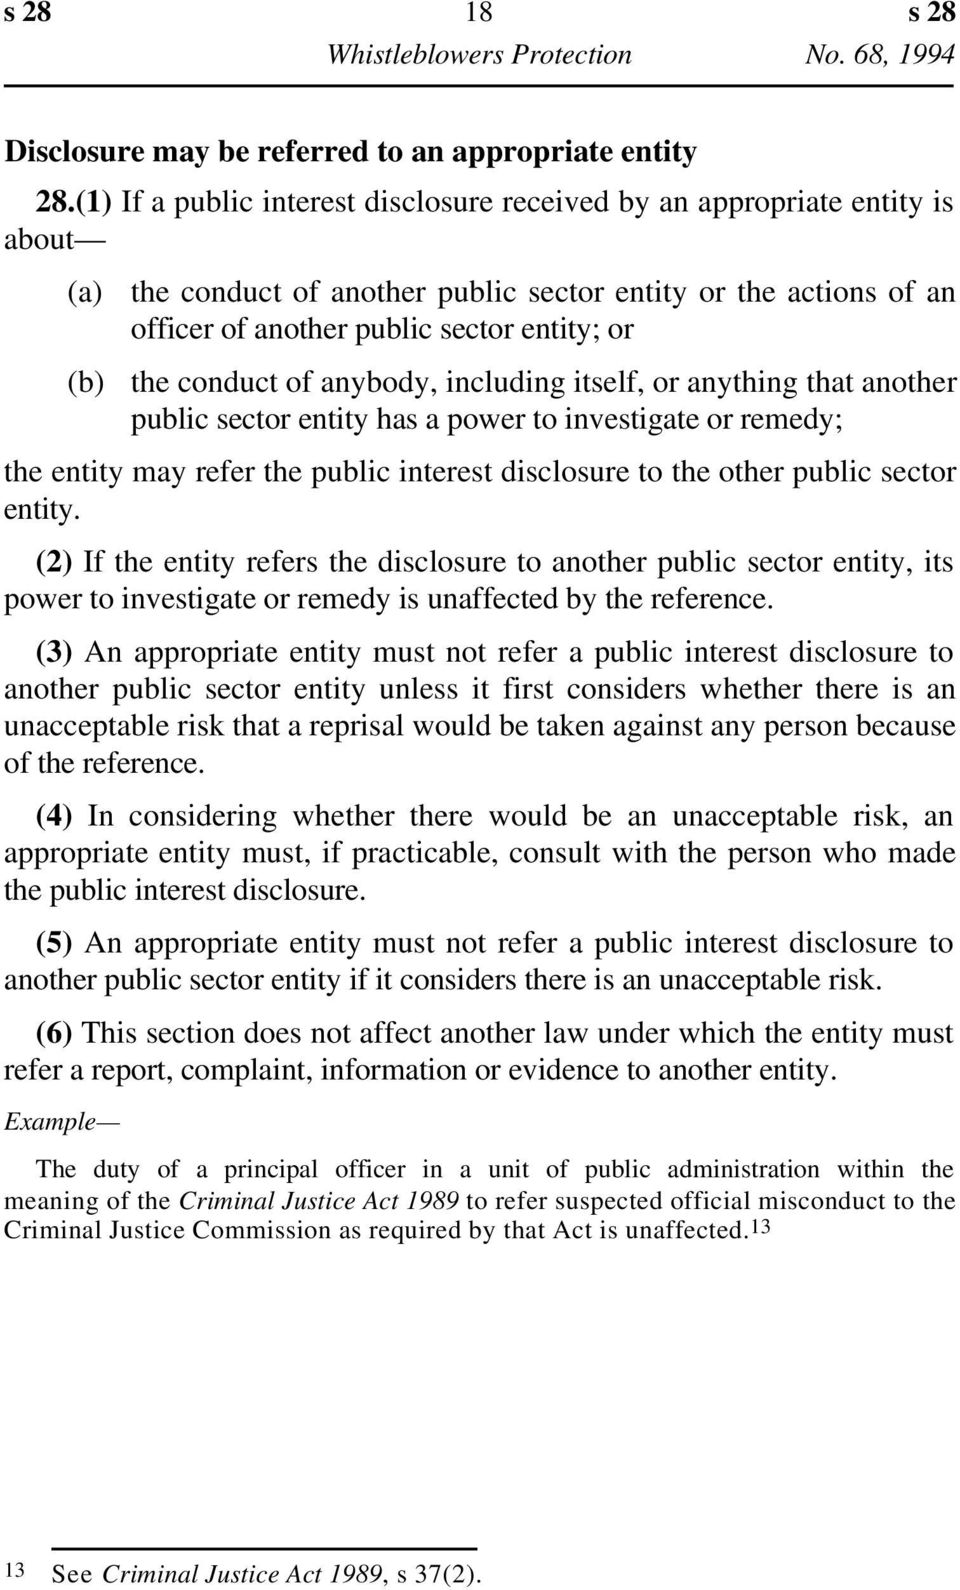 of anybody, including itself, or anything that another public sector entity has a power to investigate or remedy; the entity may refer the public interest disclosure to the other public sector entity.